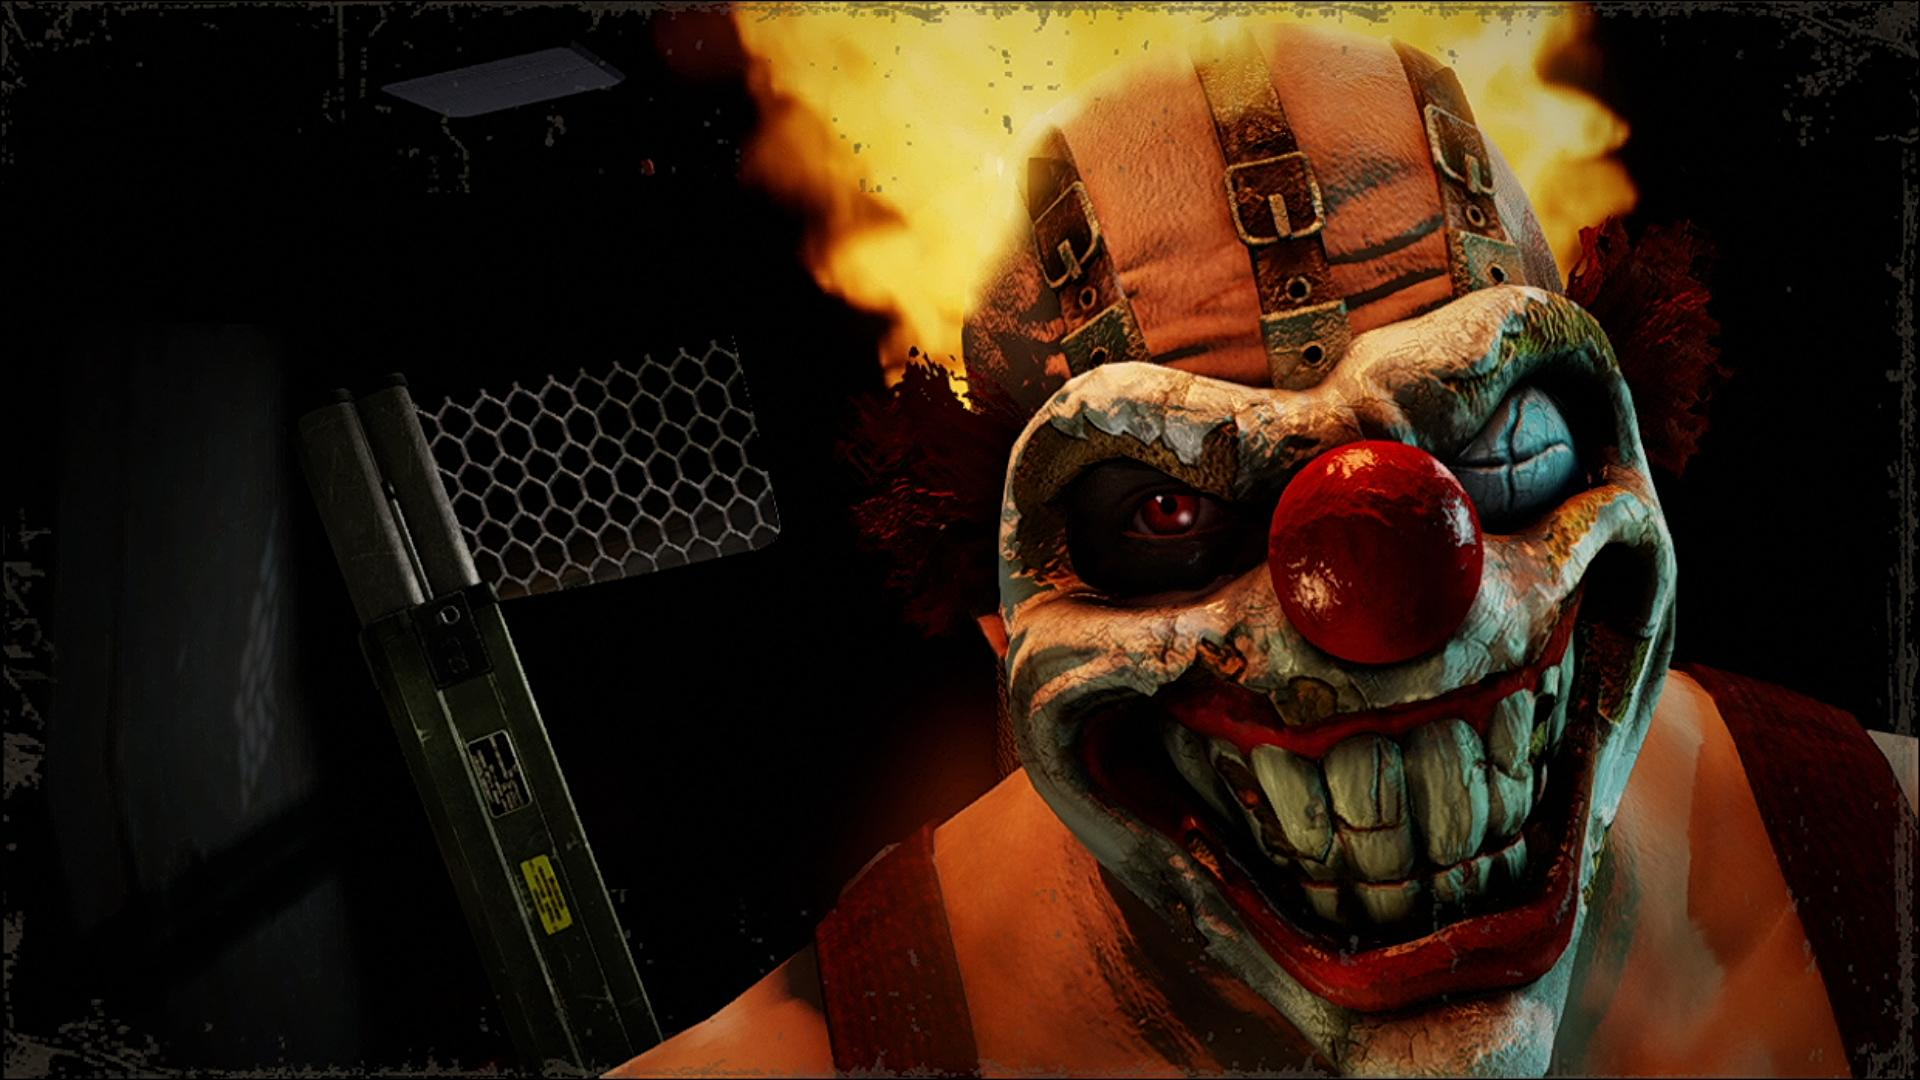 Video Game - Twisted Metal 4 Wallpaper